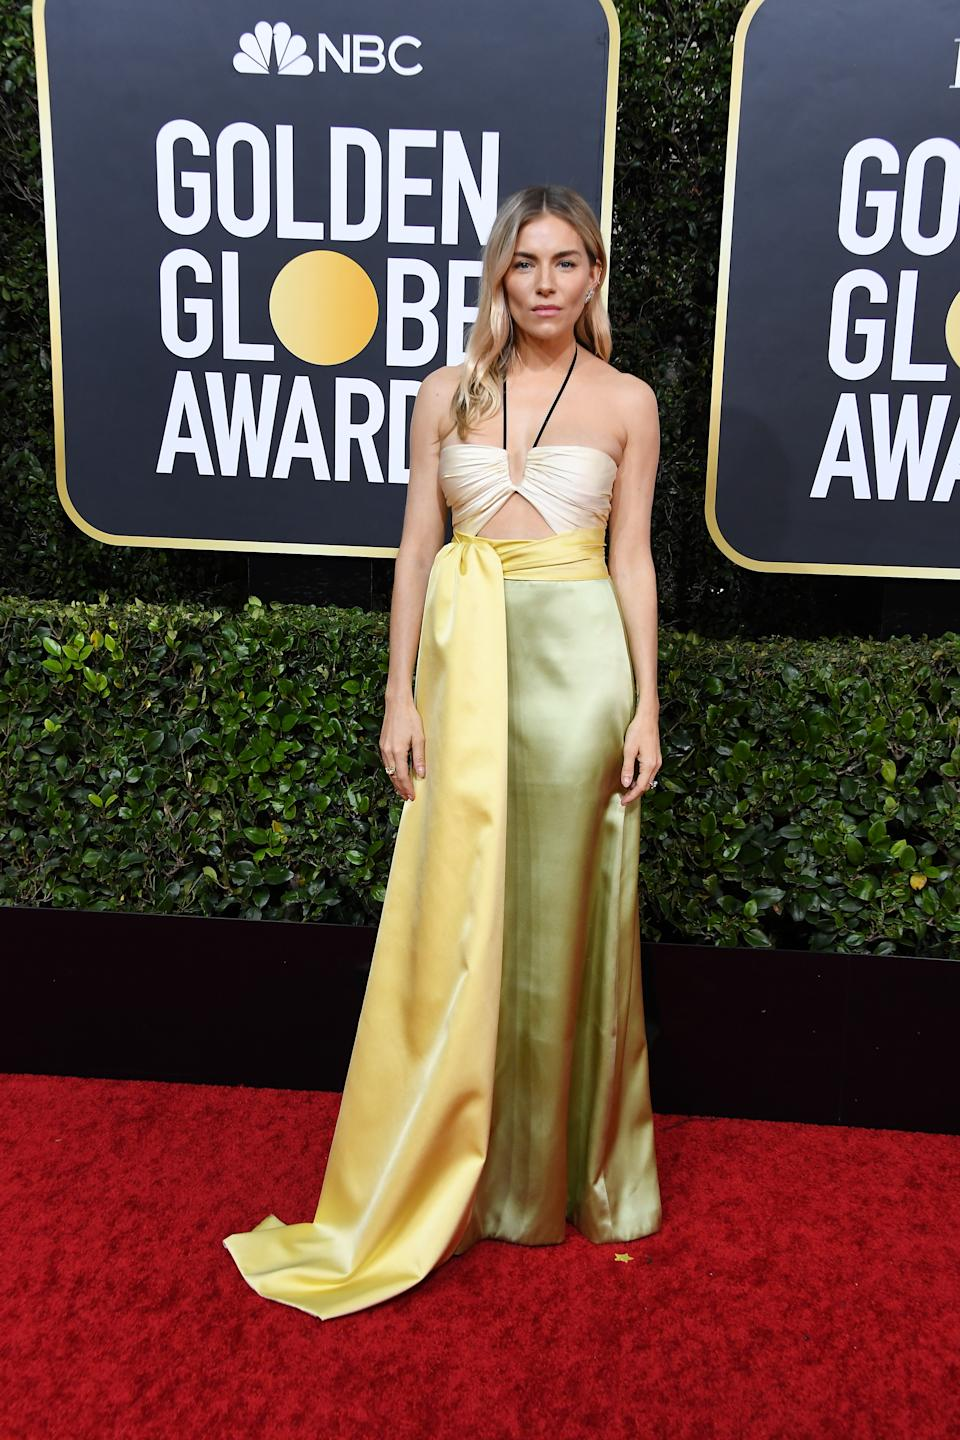 Miller opted for a summery lime and yellow gown by Gucci. (Photo by Steve Granitz/WireImage)